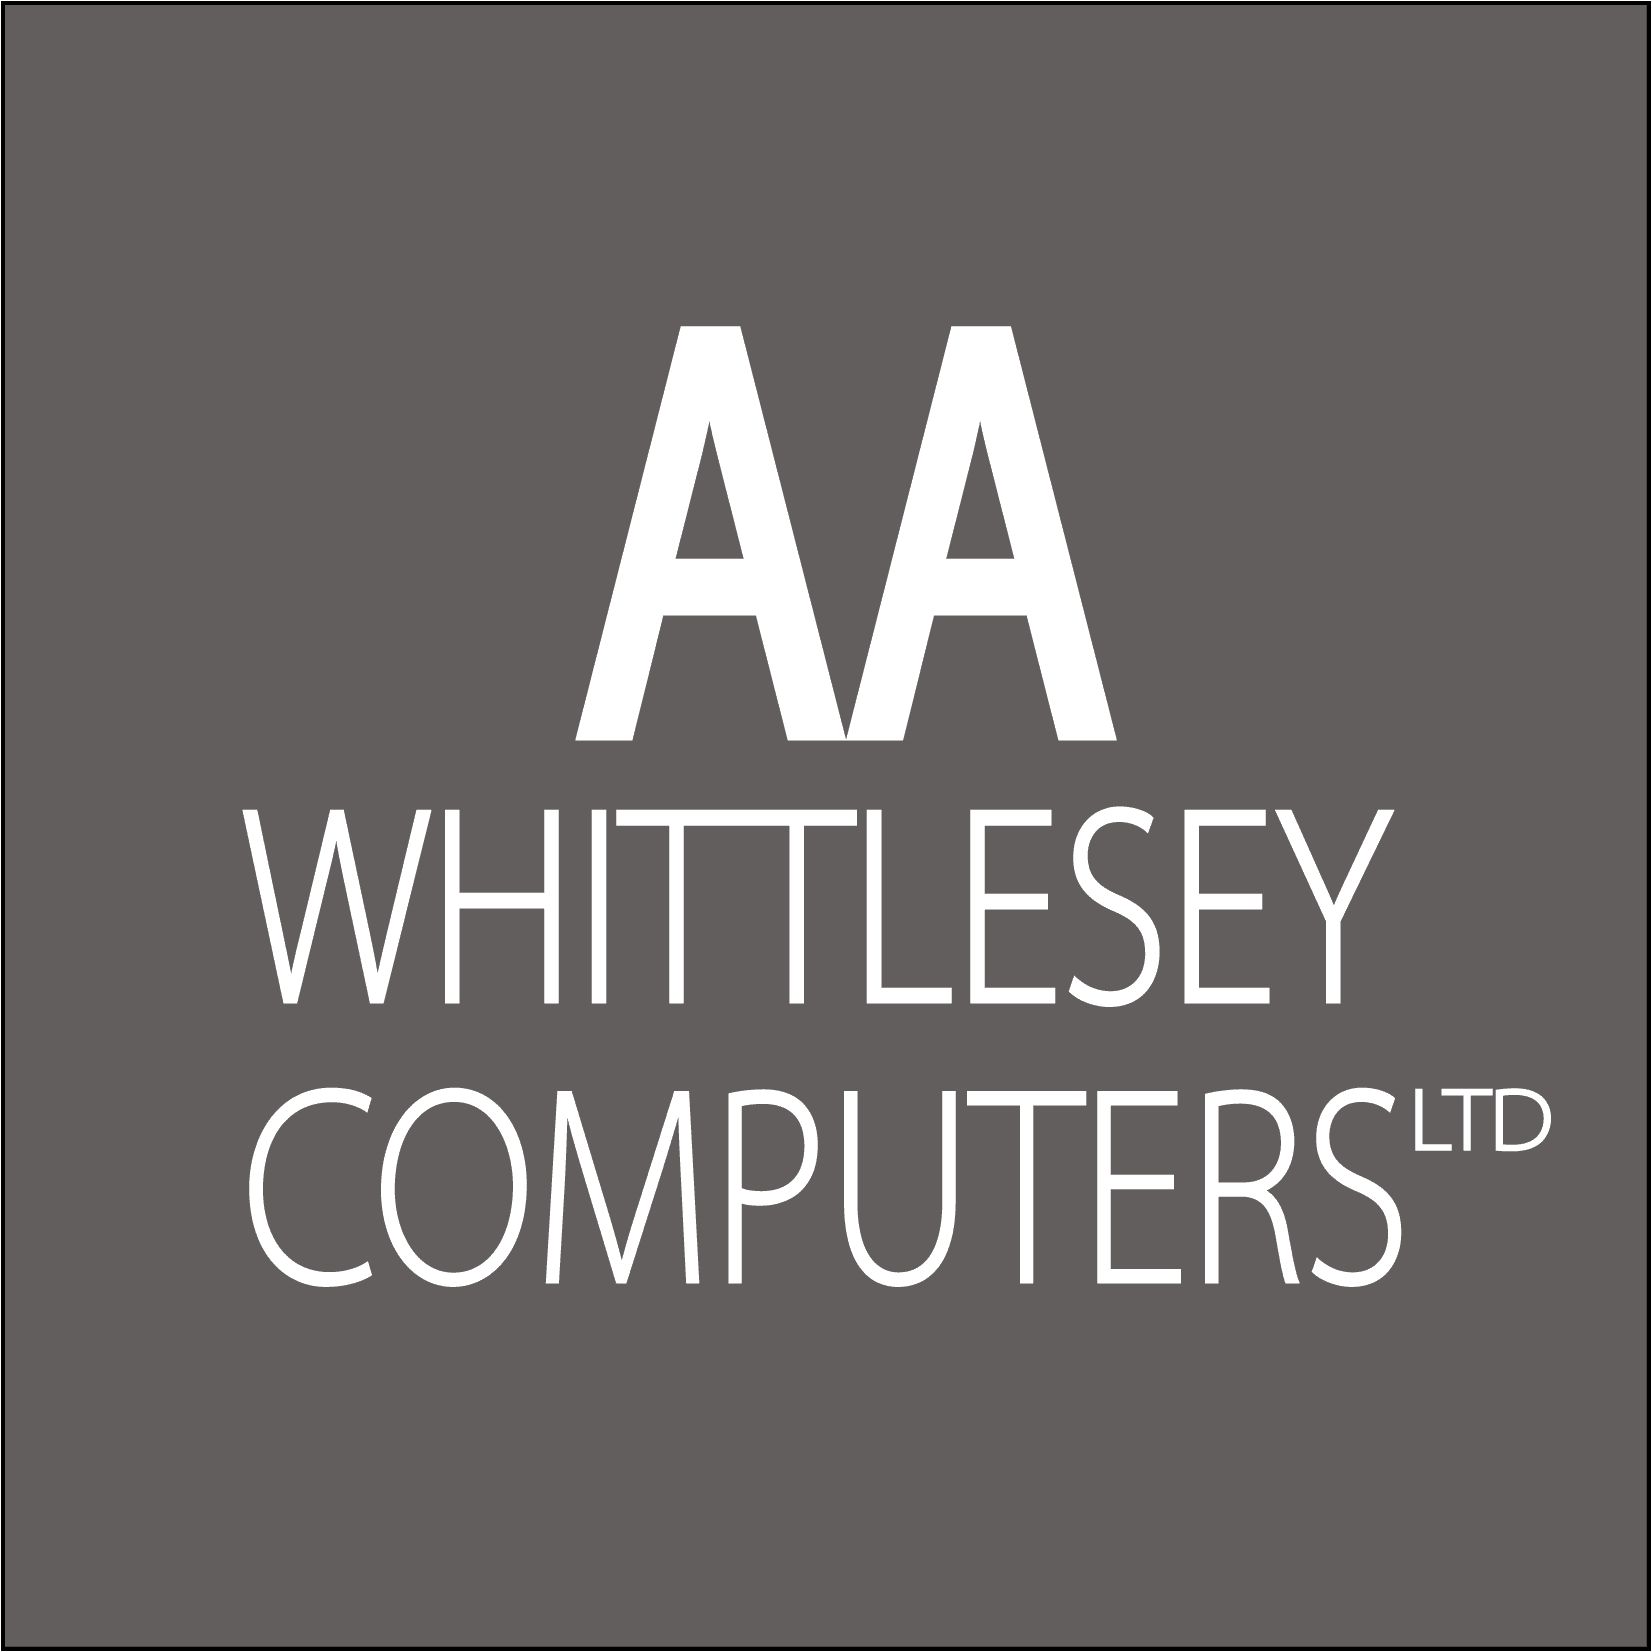 A A Whittlesey Computers